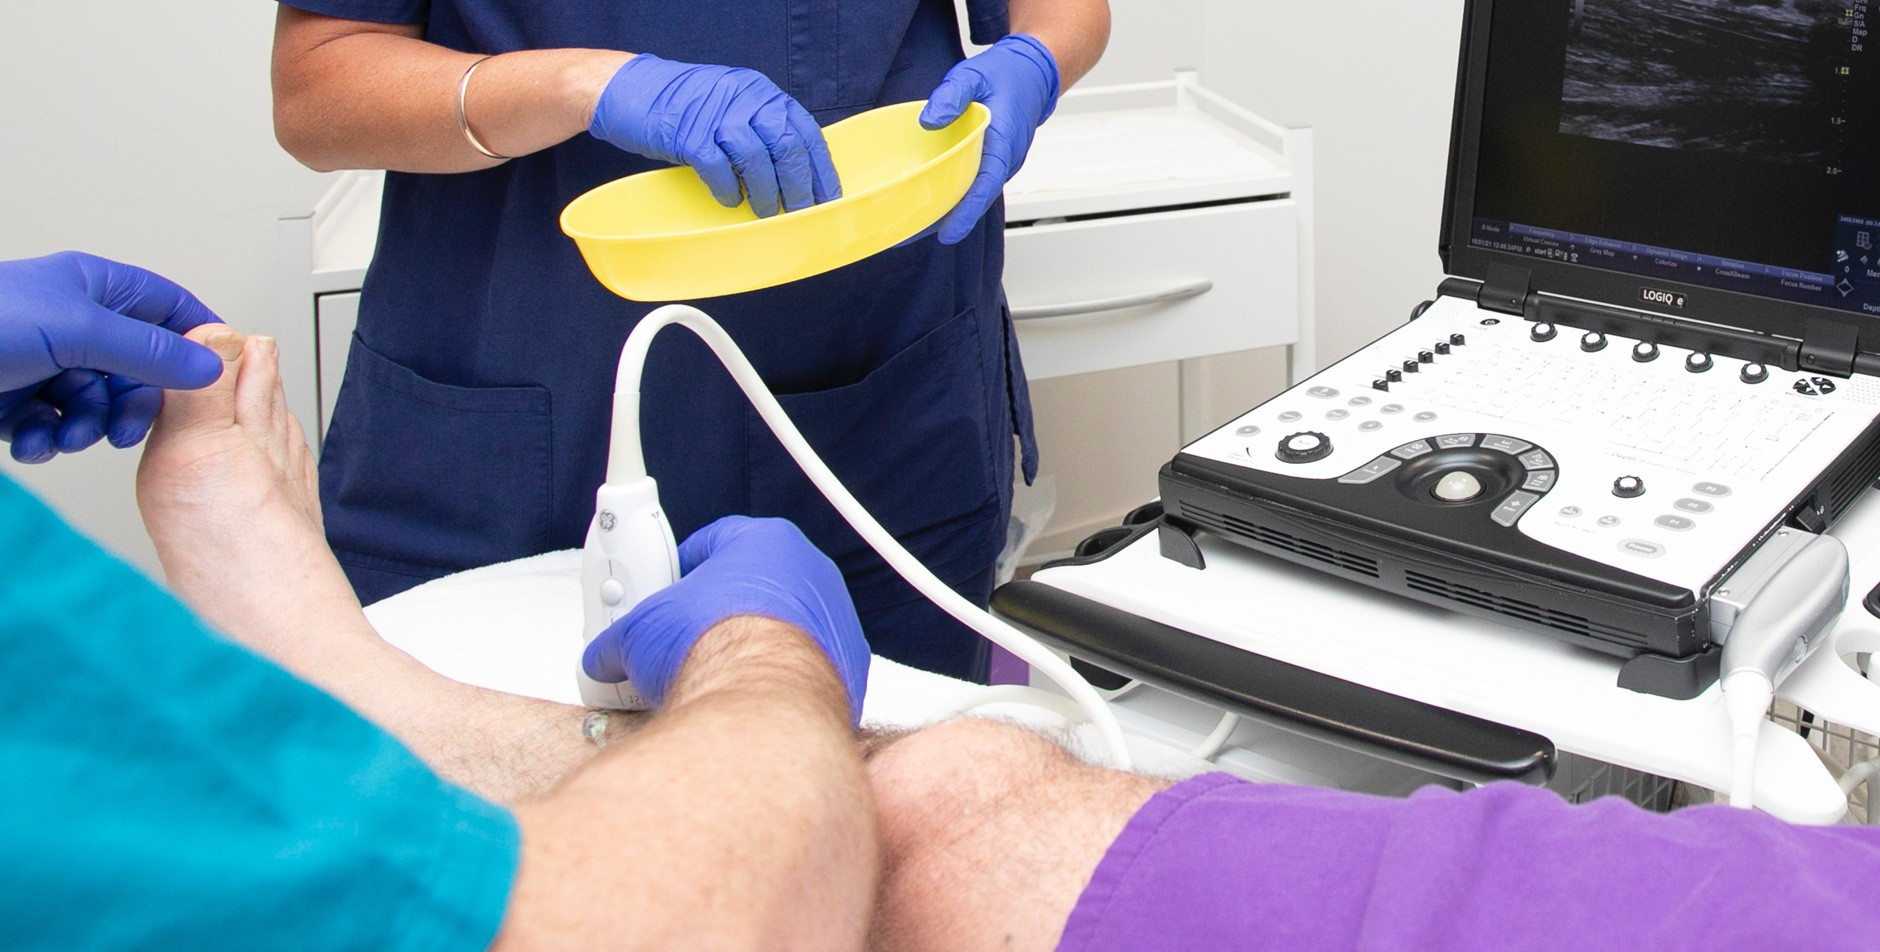 Your vascular specialist monitors your vein treatment using ultrasound.